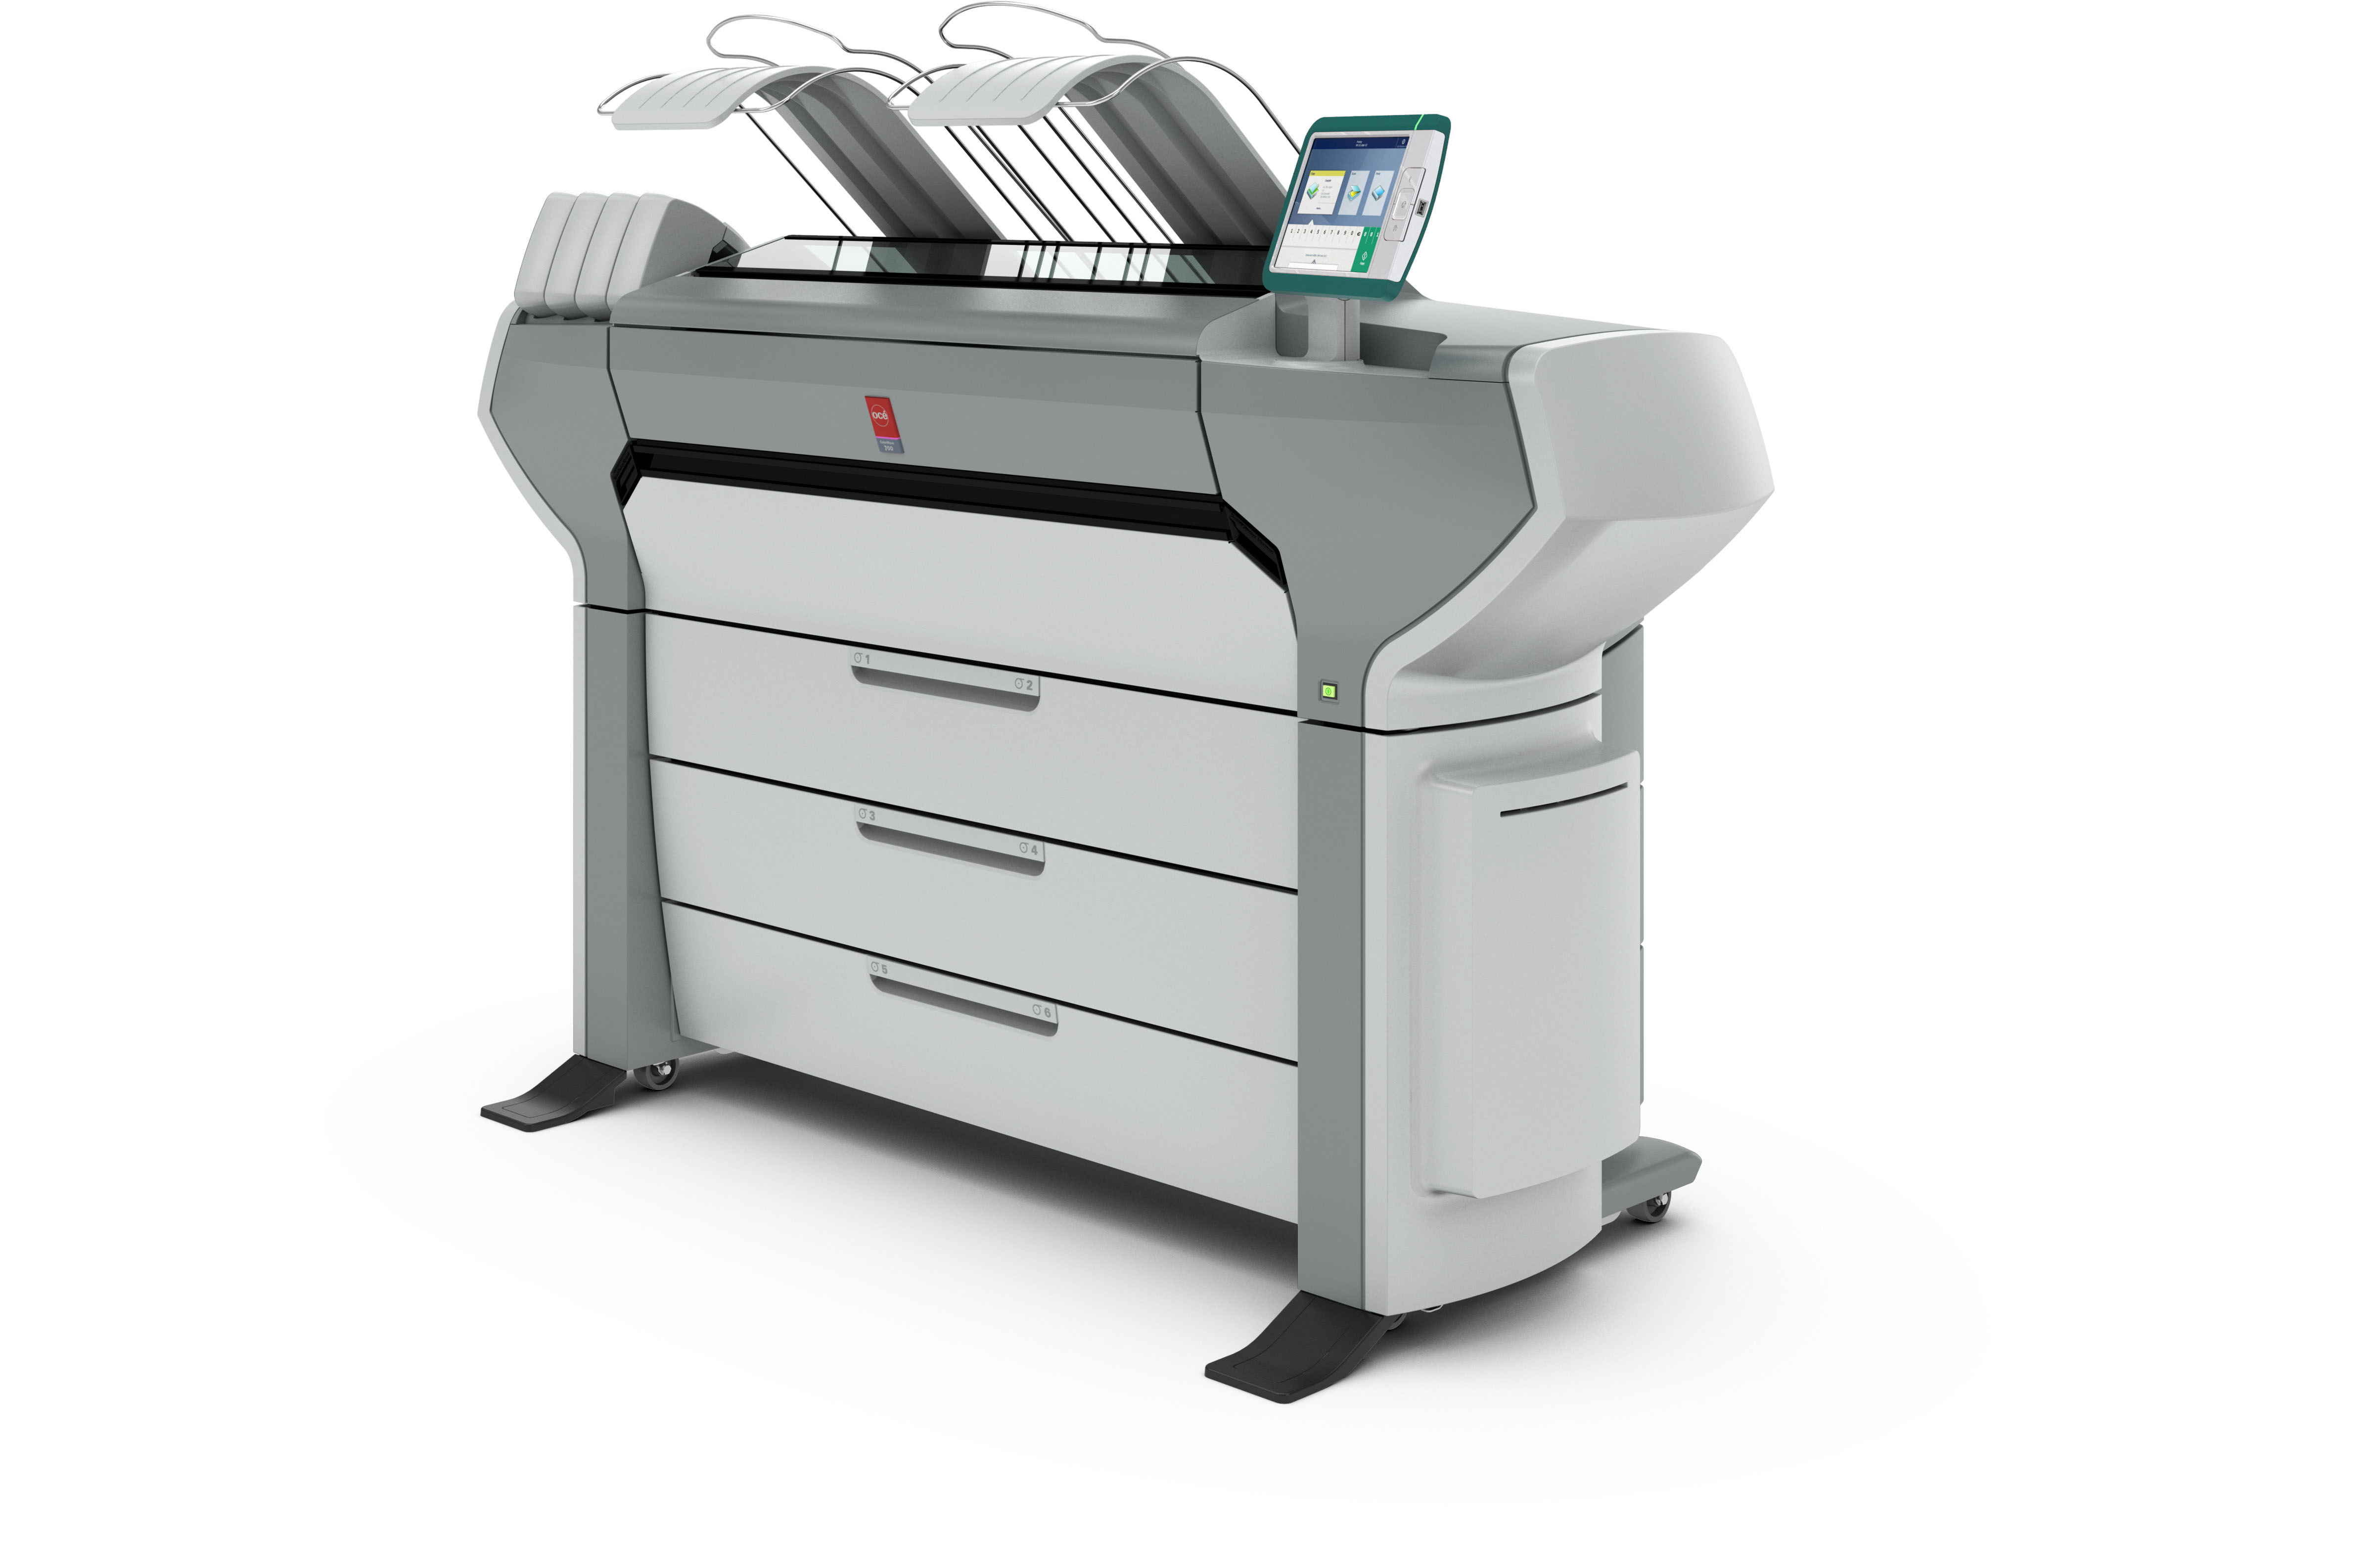 cw700-6roll-printer-only-right-angle.jpg